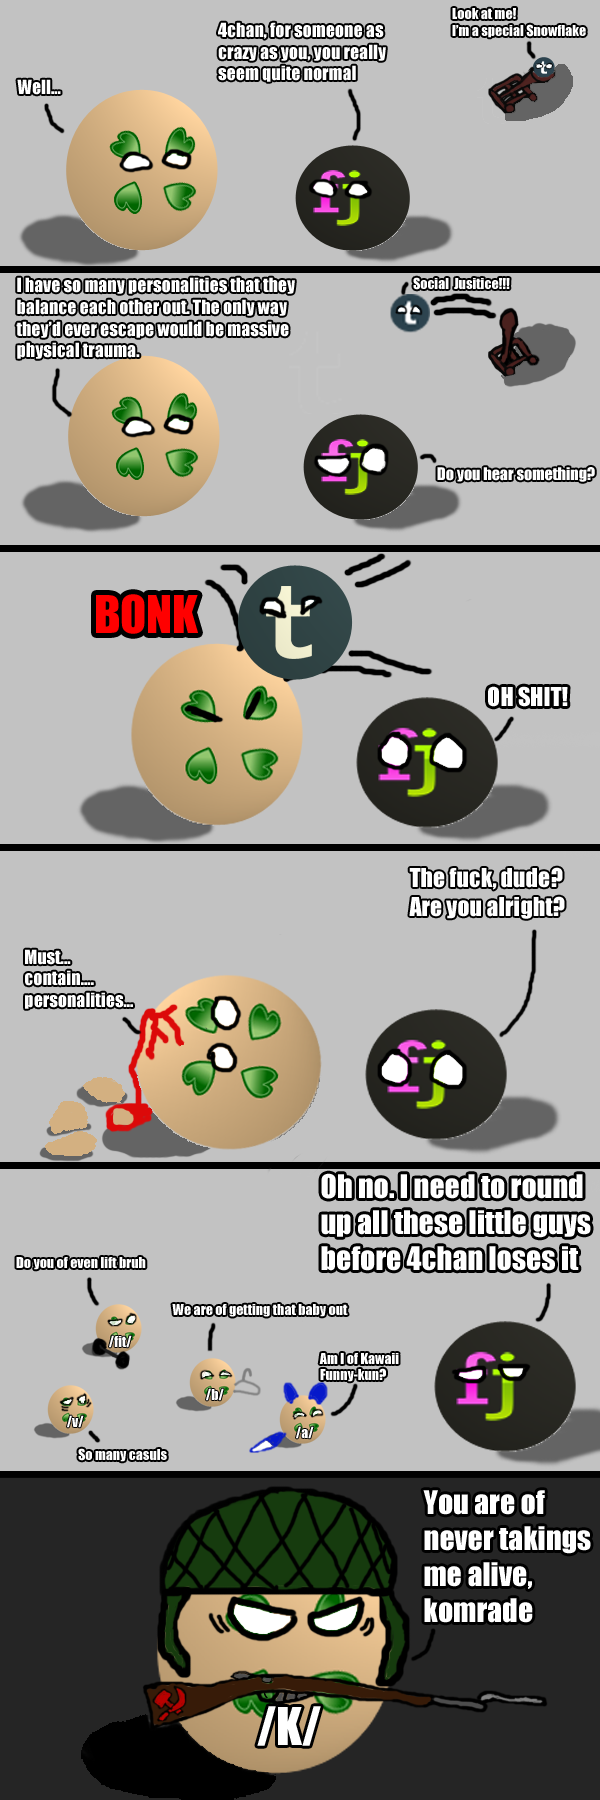 Contributions to Site-ball. This is my first photoshop comic. Hopefully it doesn't suck too badly. I'm aware that I probably something up. Enlarging may be need